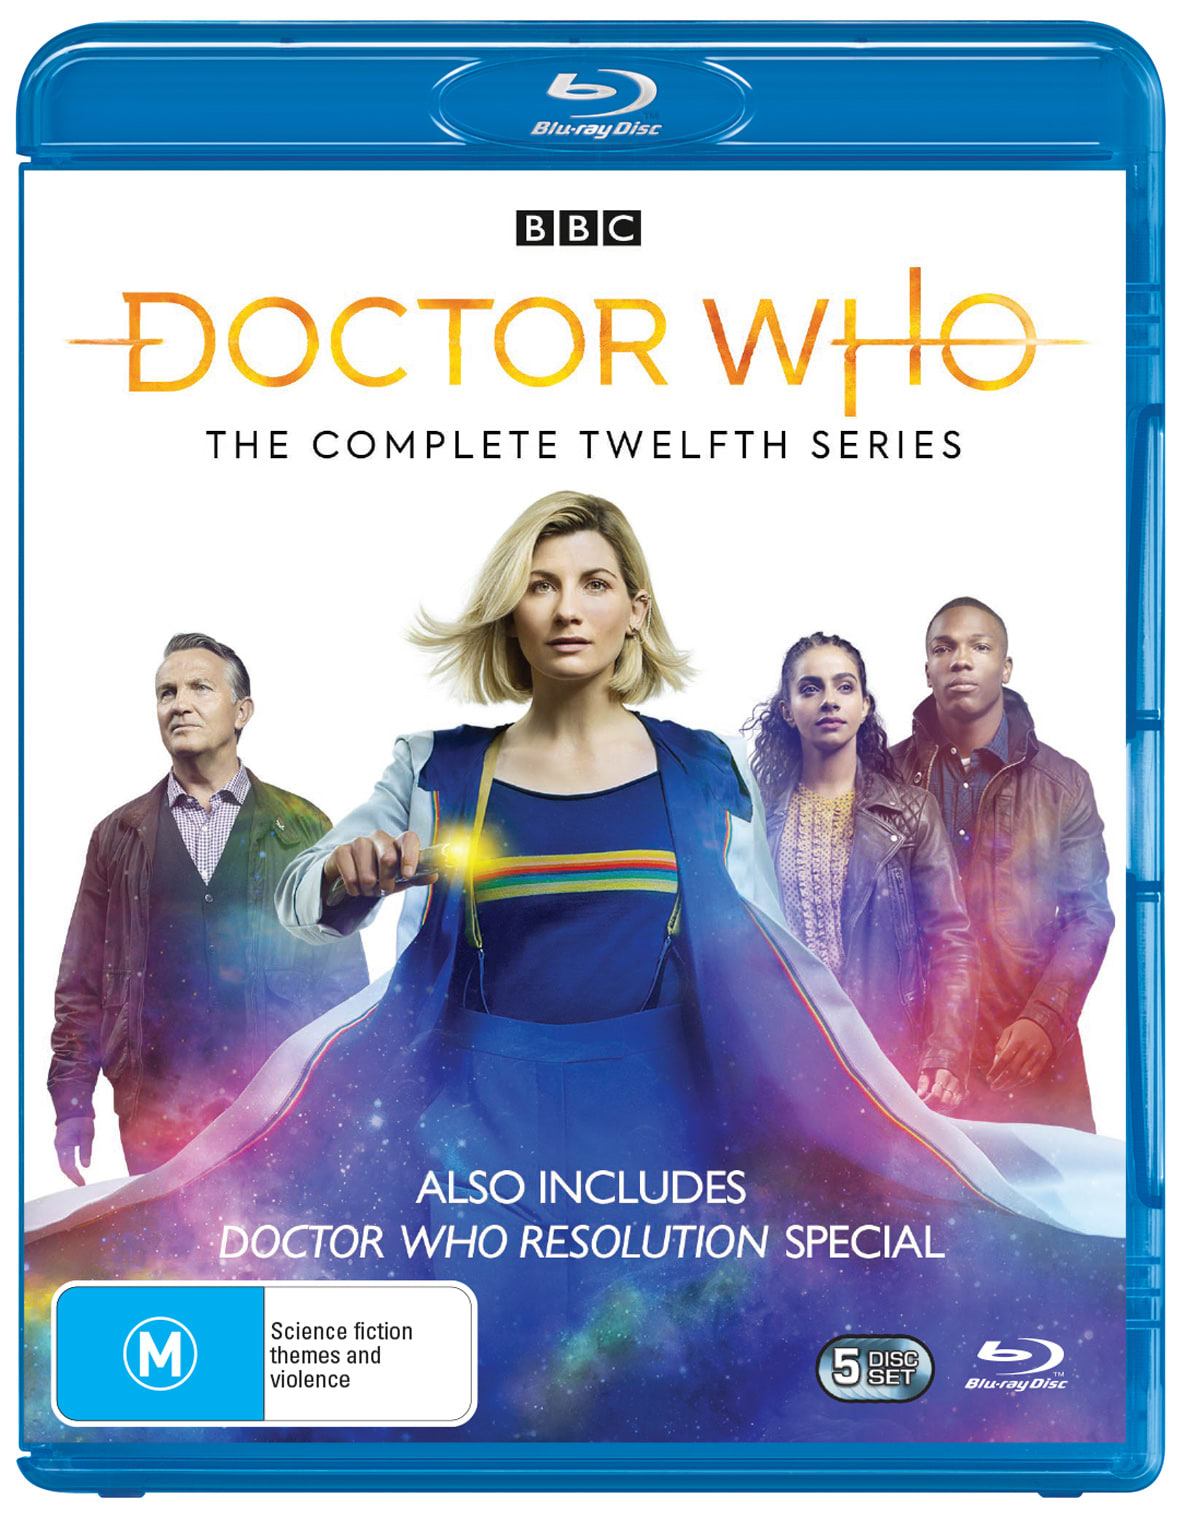 Doctor Who: The Complete Twelfth Series (Box Set) [Blu-ray]